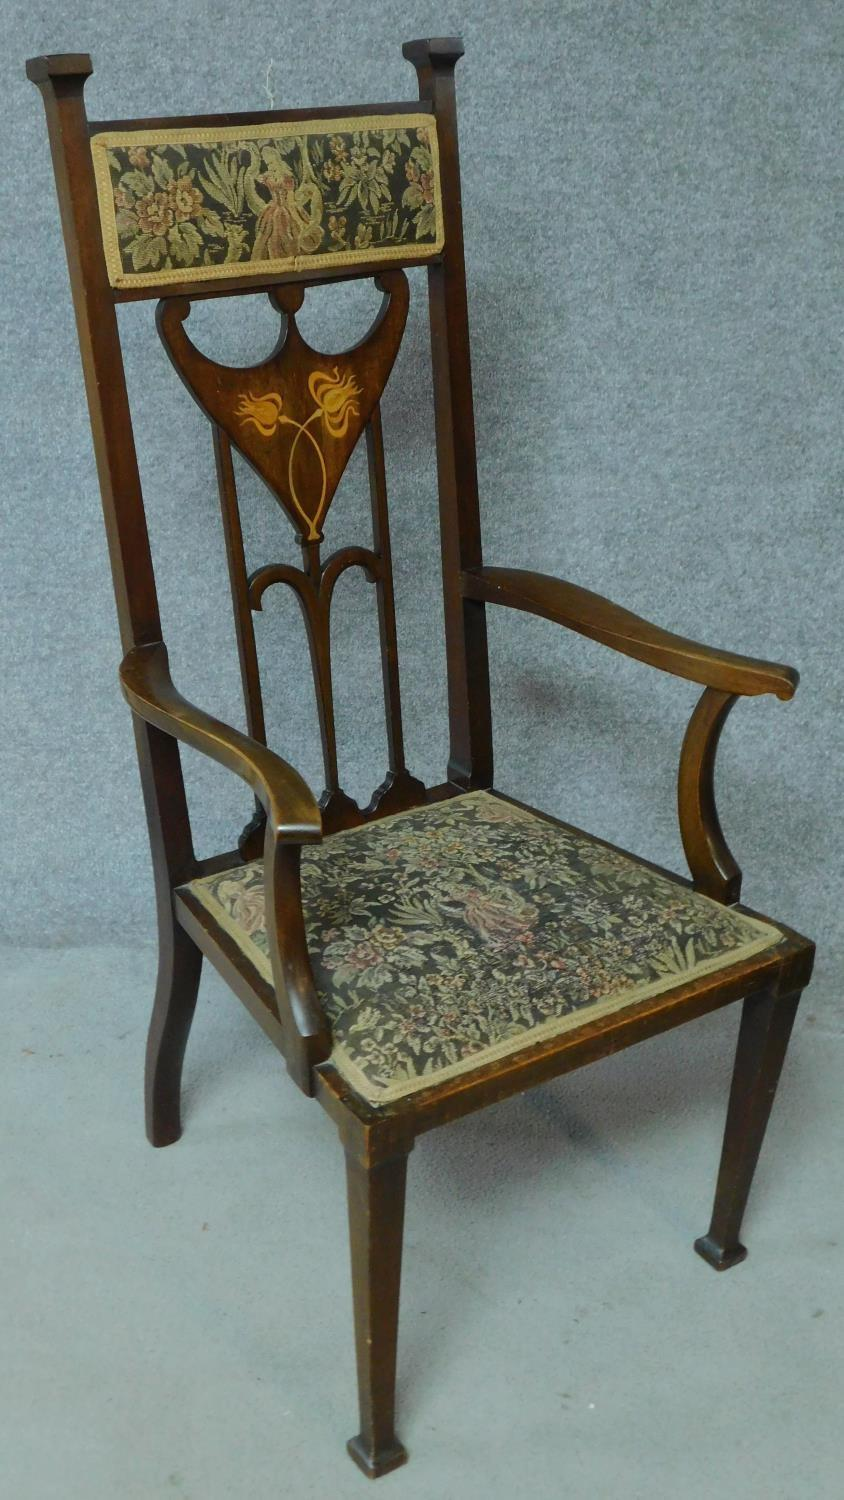 An Arts & Crafts mahogany and satinwood inlaid armchair with stylised motifs to the back splat in - Image 2 of 6